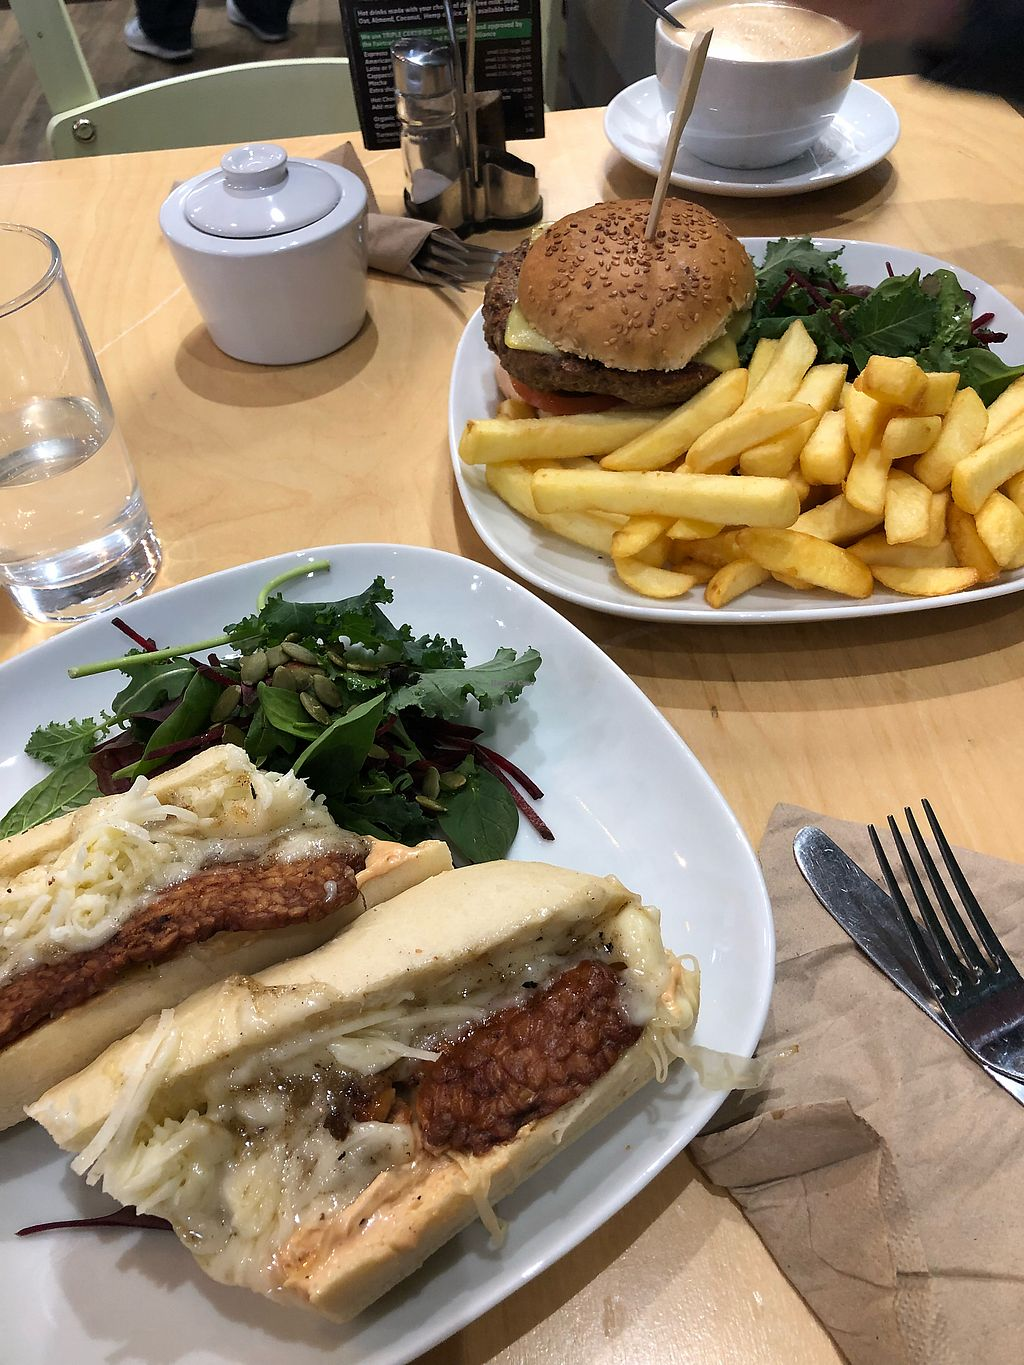 "Photo of Cafe Thrive  by <a href=""/members/profile/broganlane"">broganlane</a> <br/>The New Yorker Reuben and Meaty Burger  <br/> January 20, 2018  - <a href='/contact/abuse/image/98116/348919'>Report</a>"